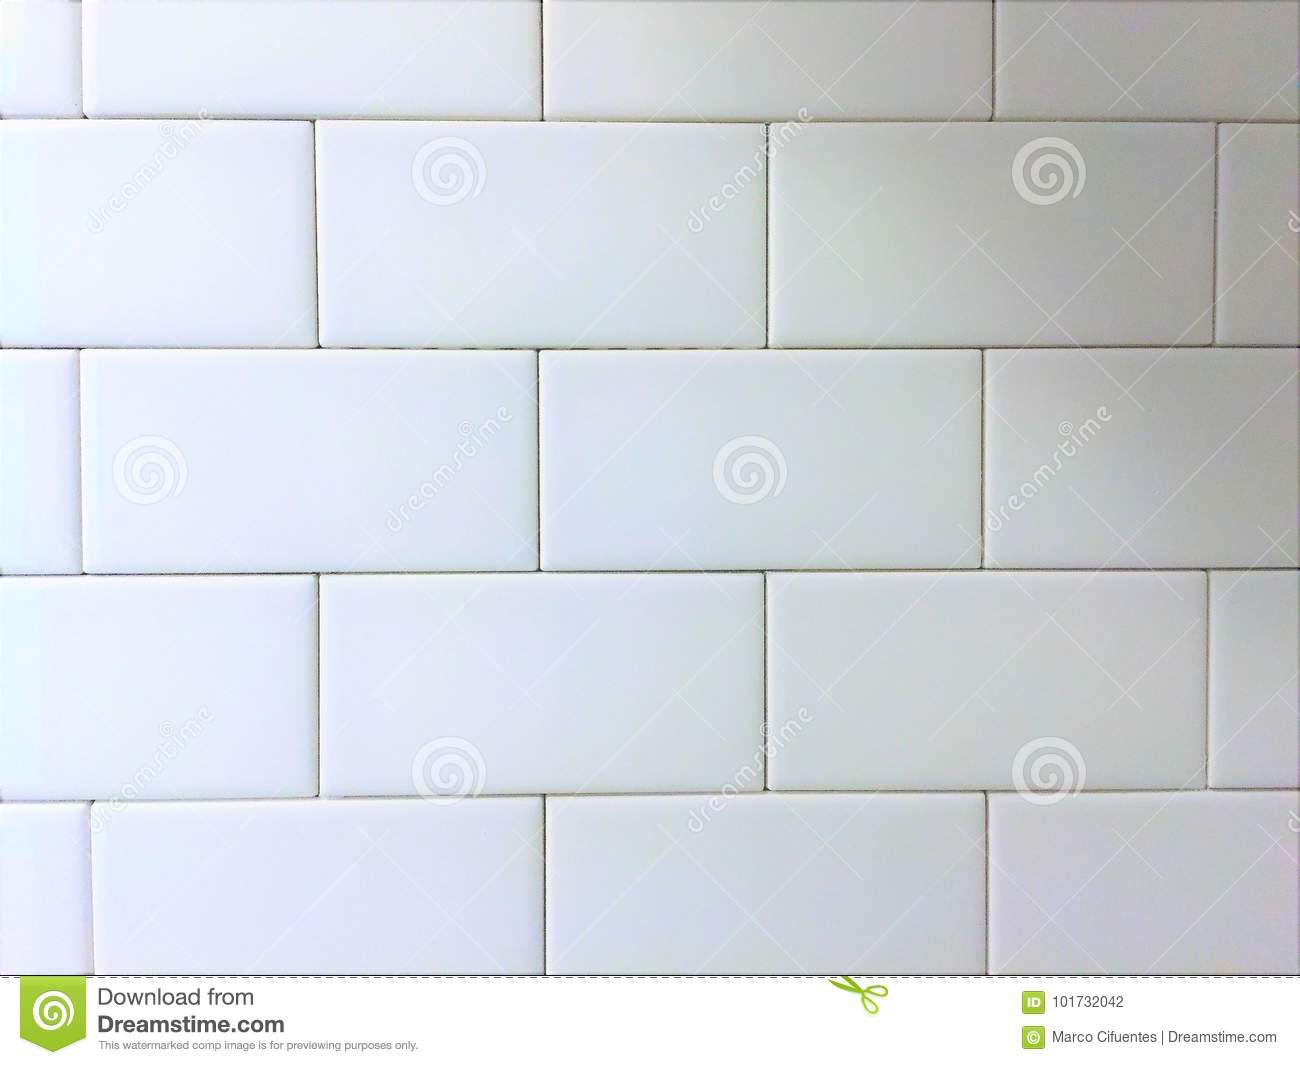 white tile backsplash subway pattern white subway pattern backsplash tile